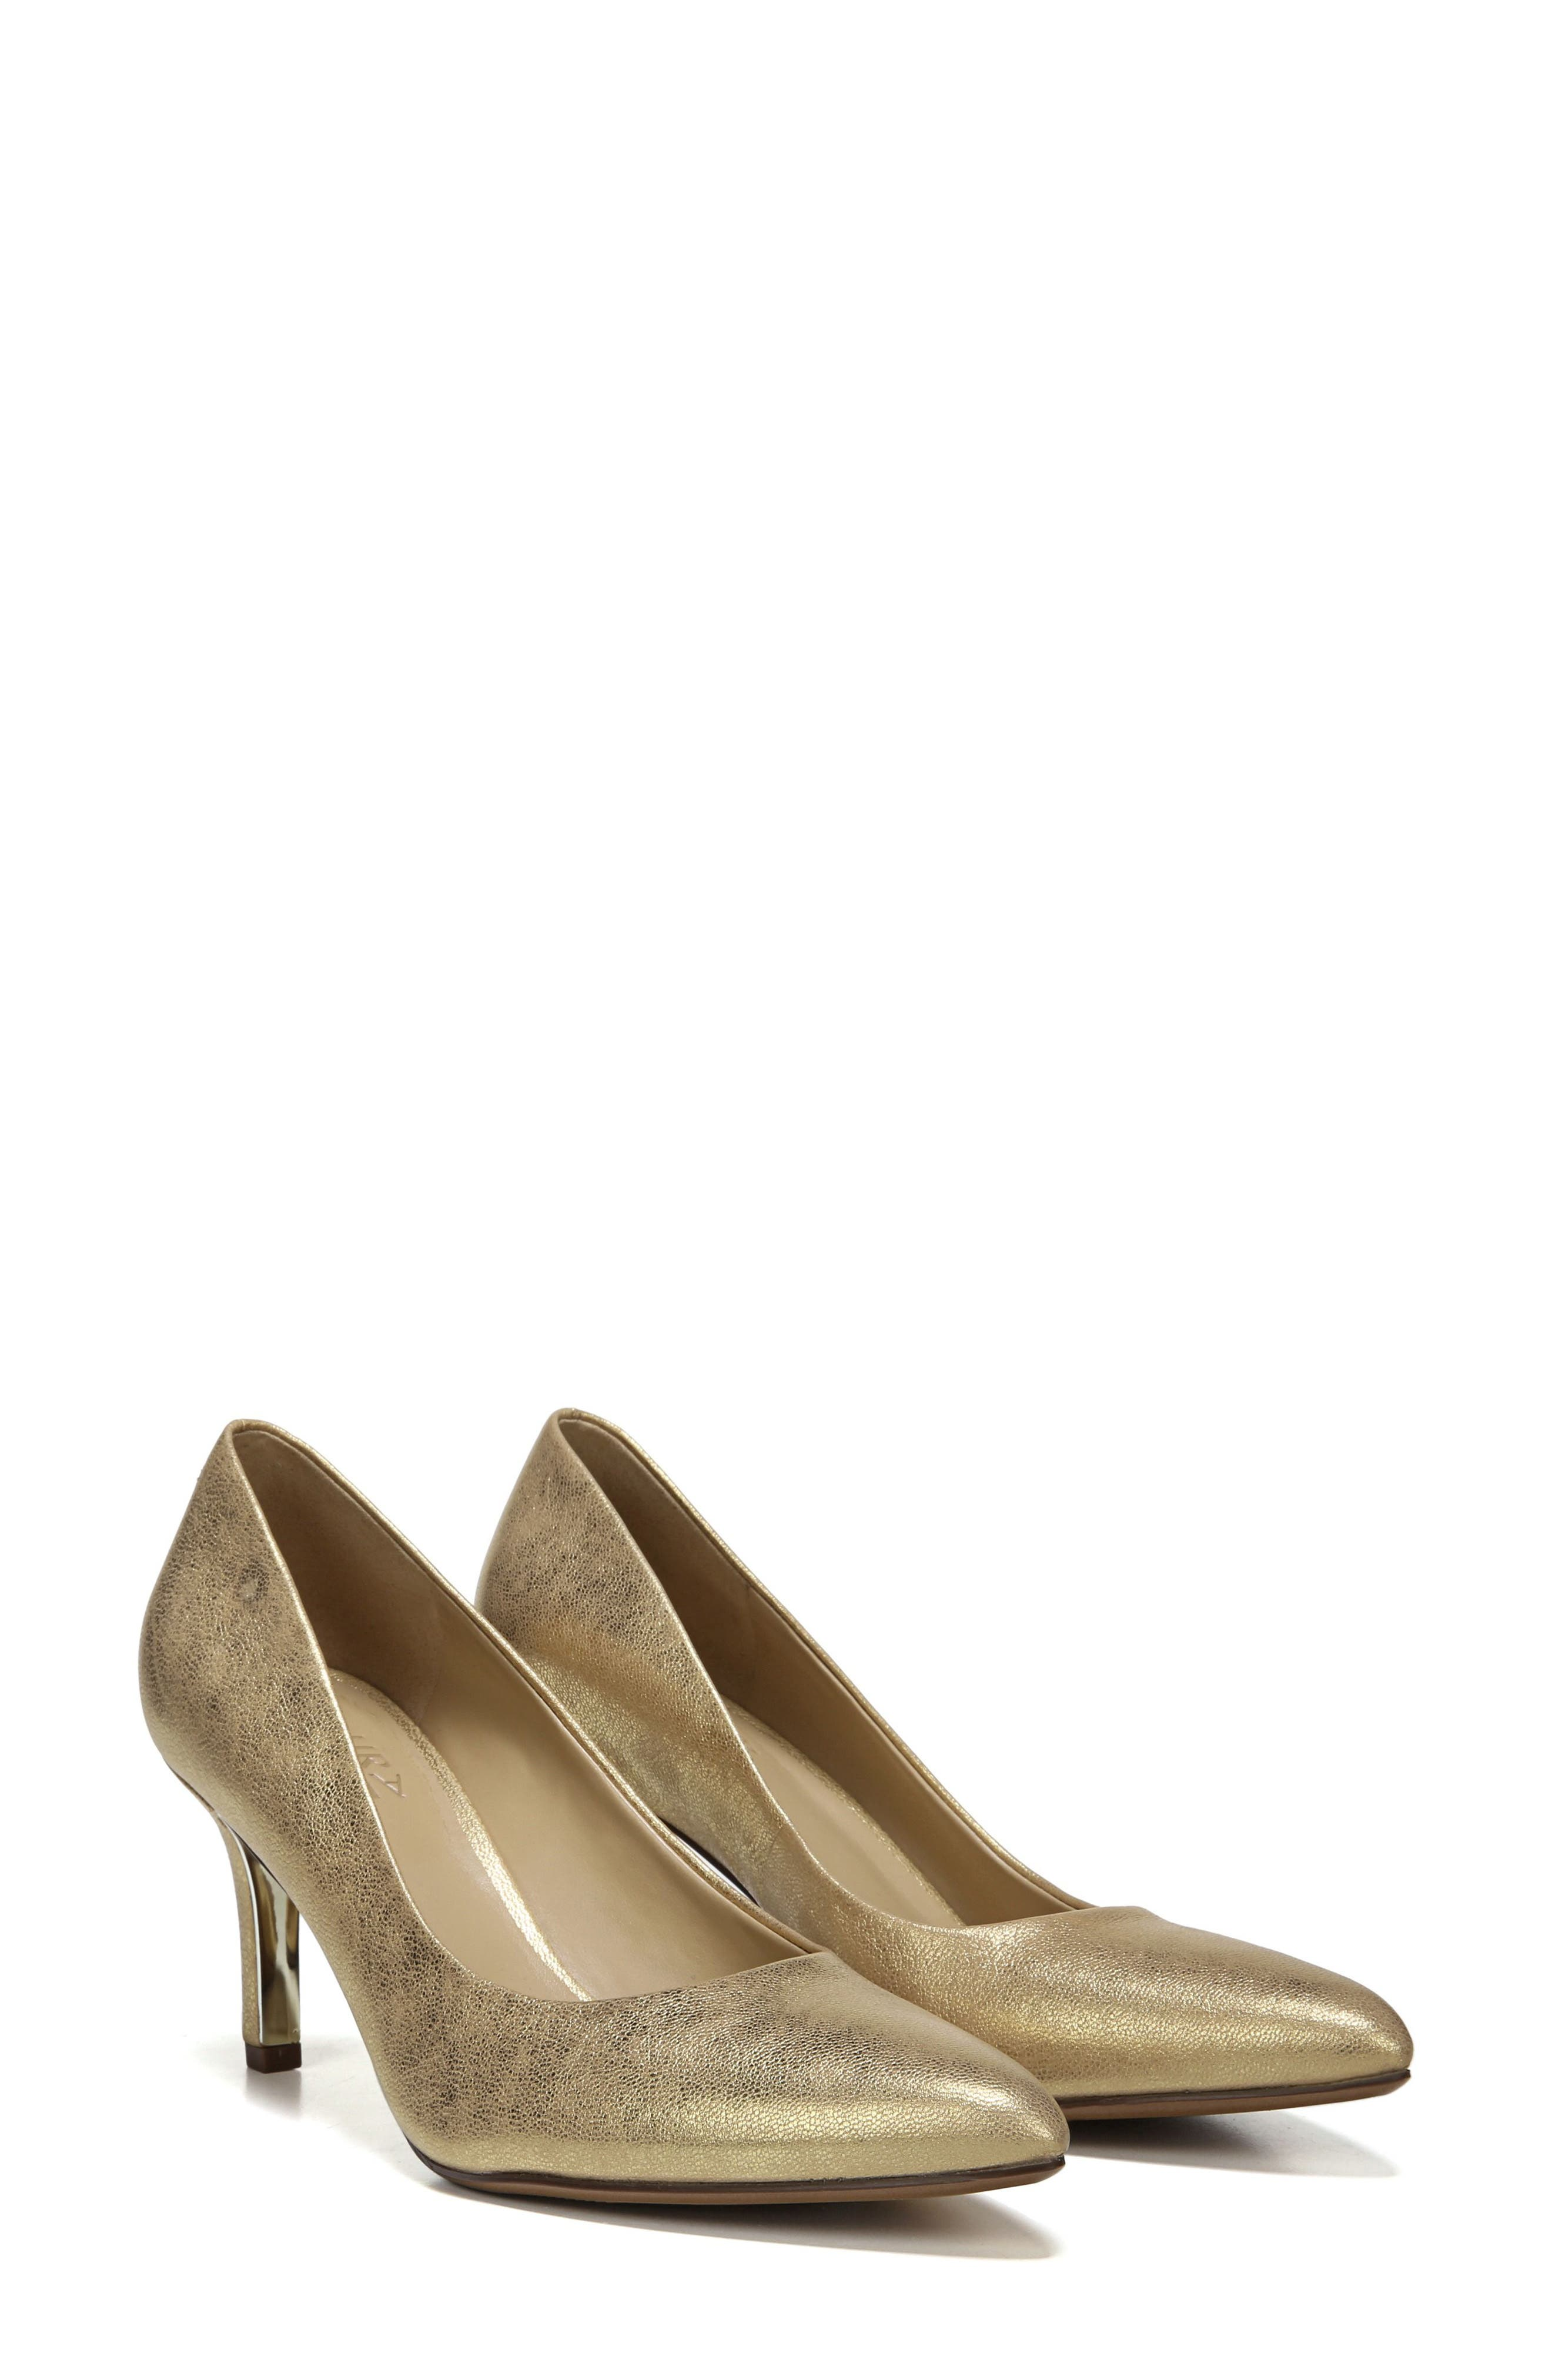 NATURALIZER, Natalie Pointy Toe Pump, Main thumbnail 1, color, GOLD LEATHER